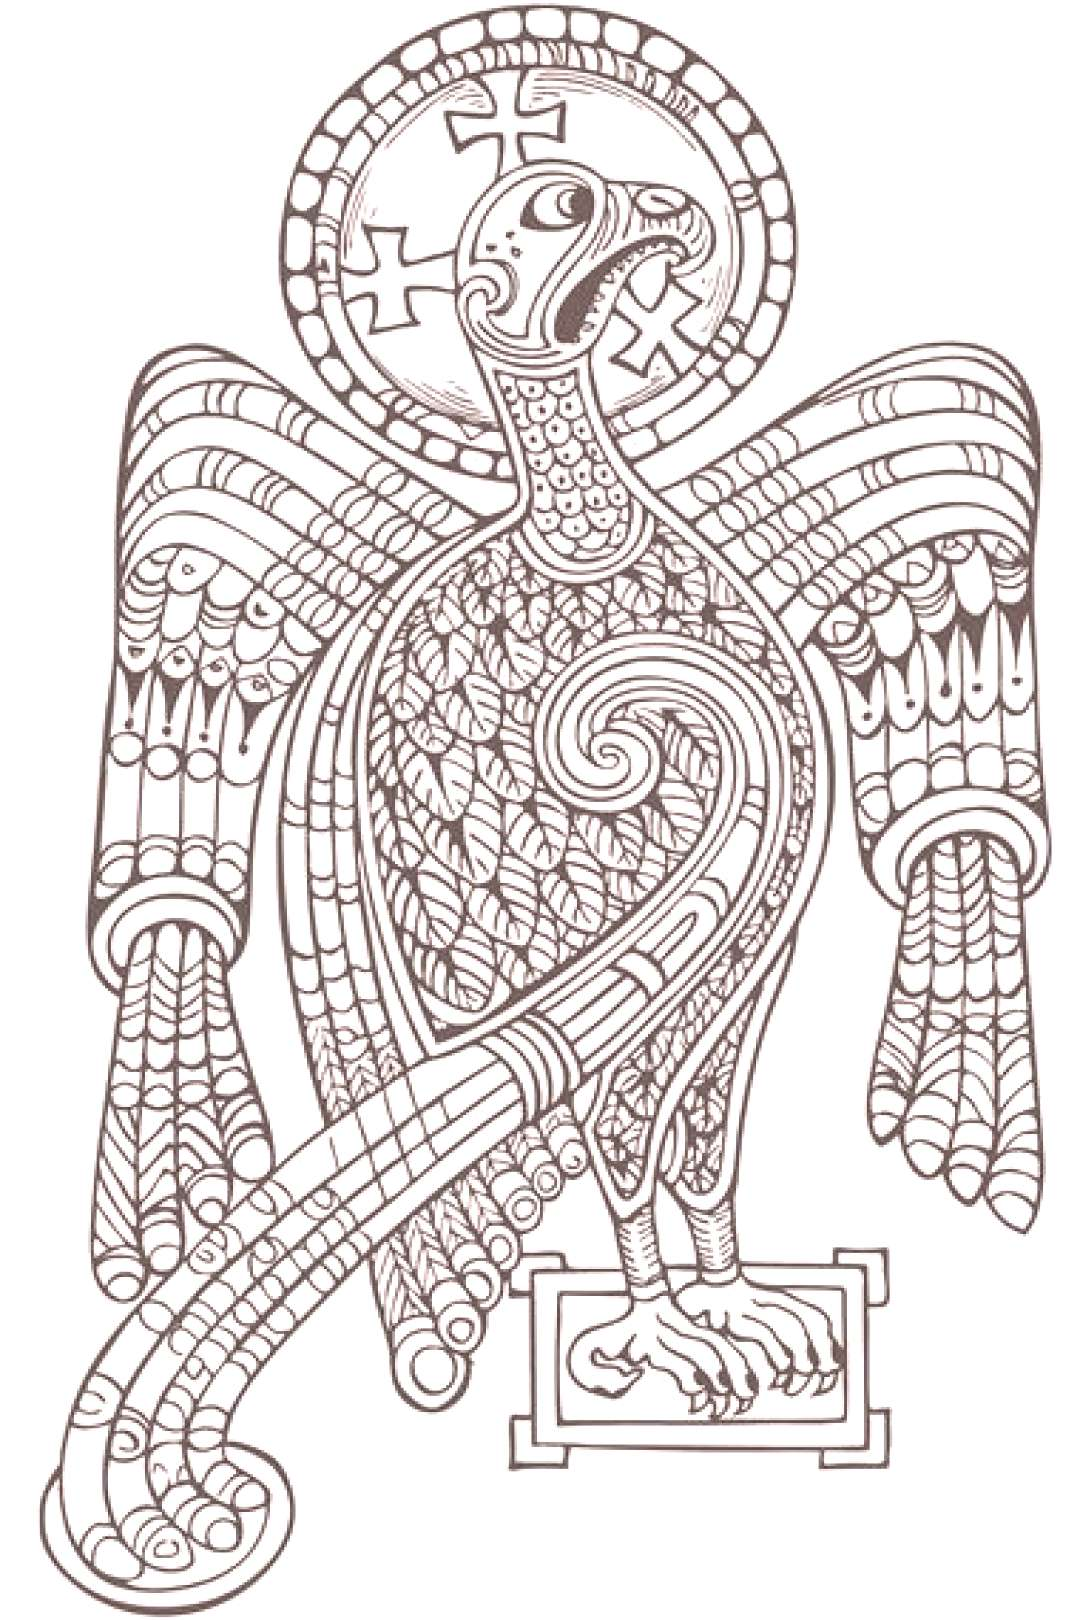 Book Of Kells Colouring Pages Printable Book Of Kells Colouring Pages Printable